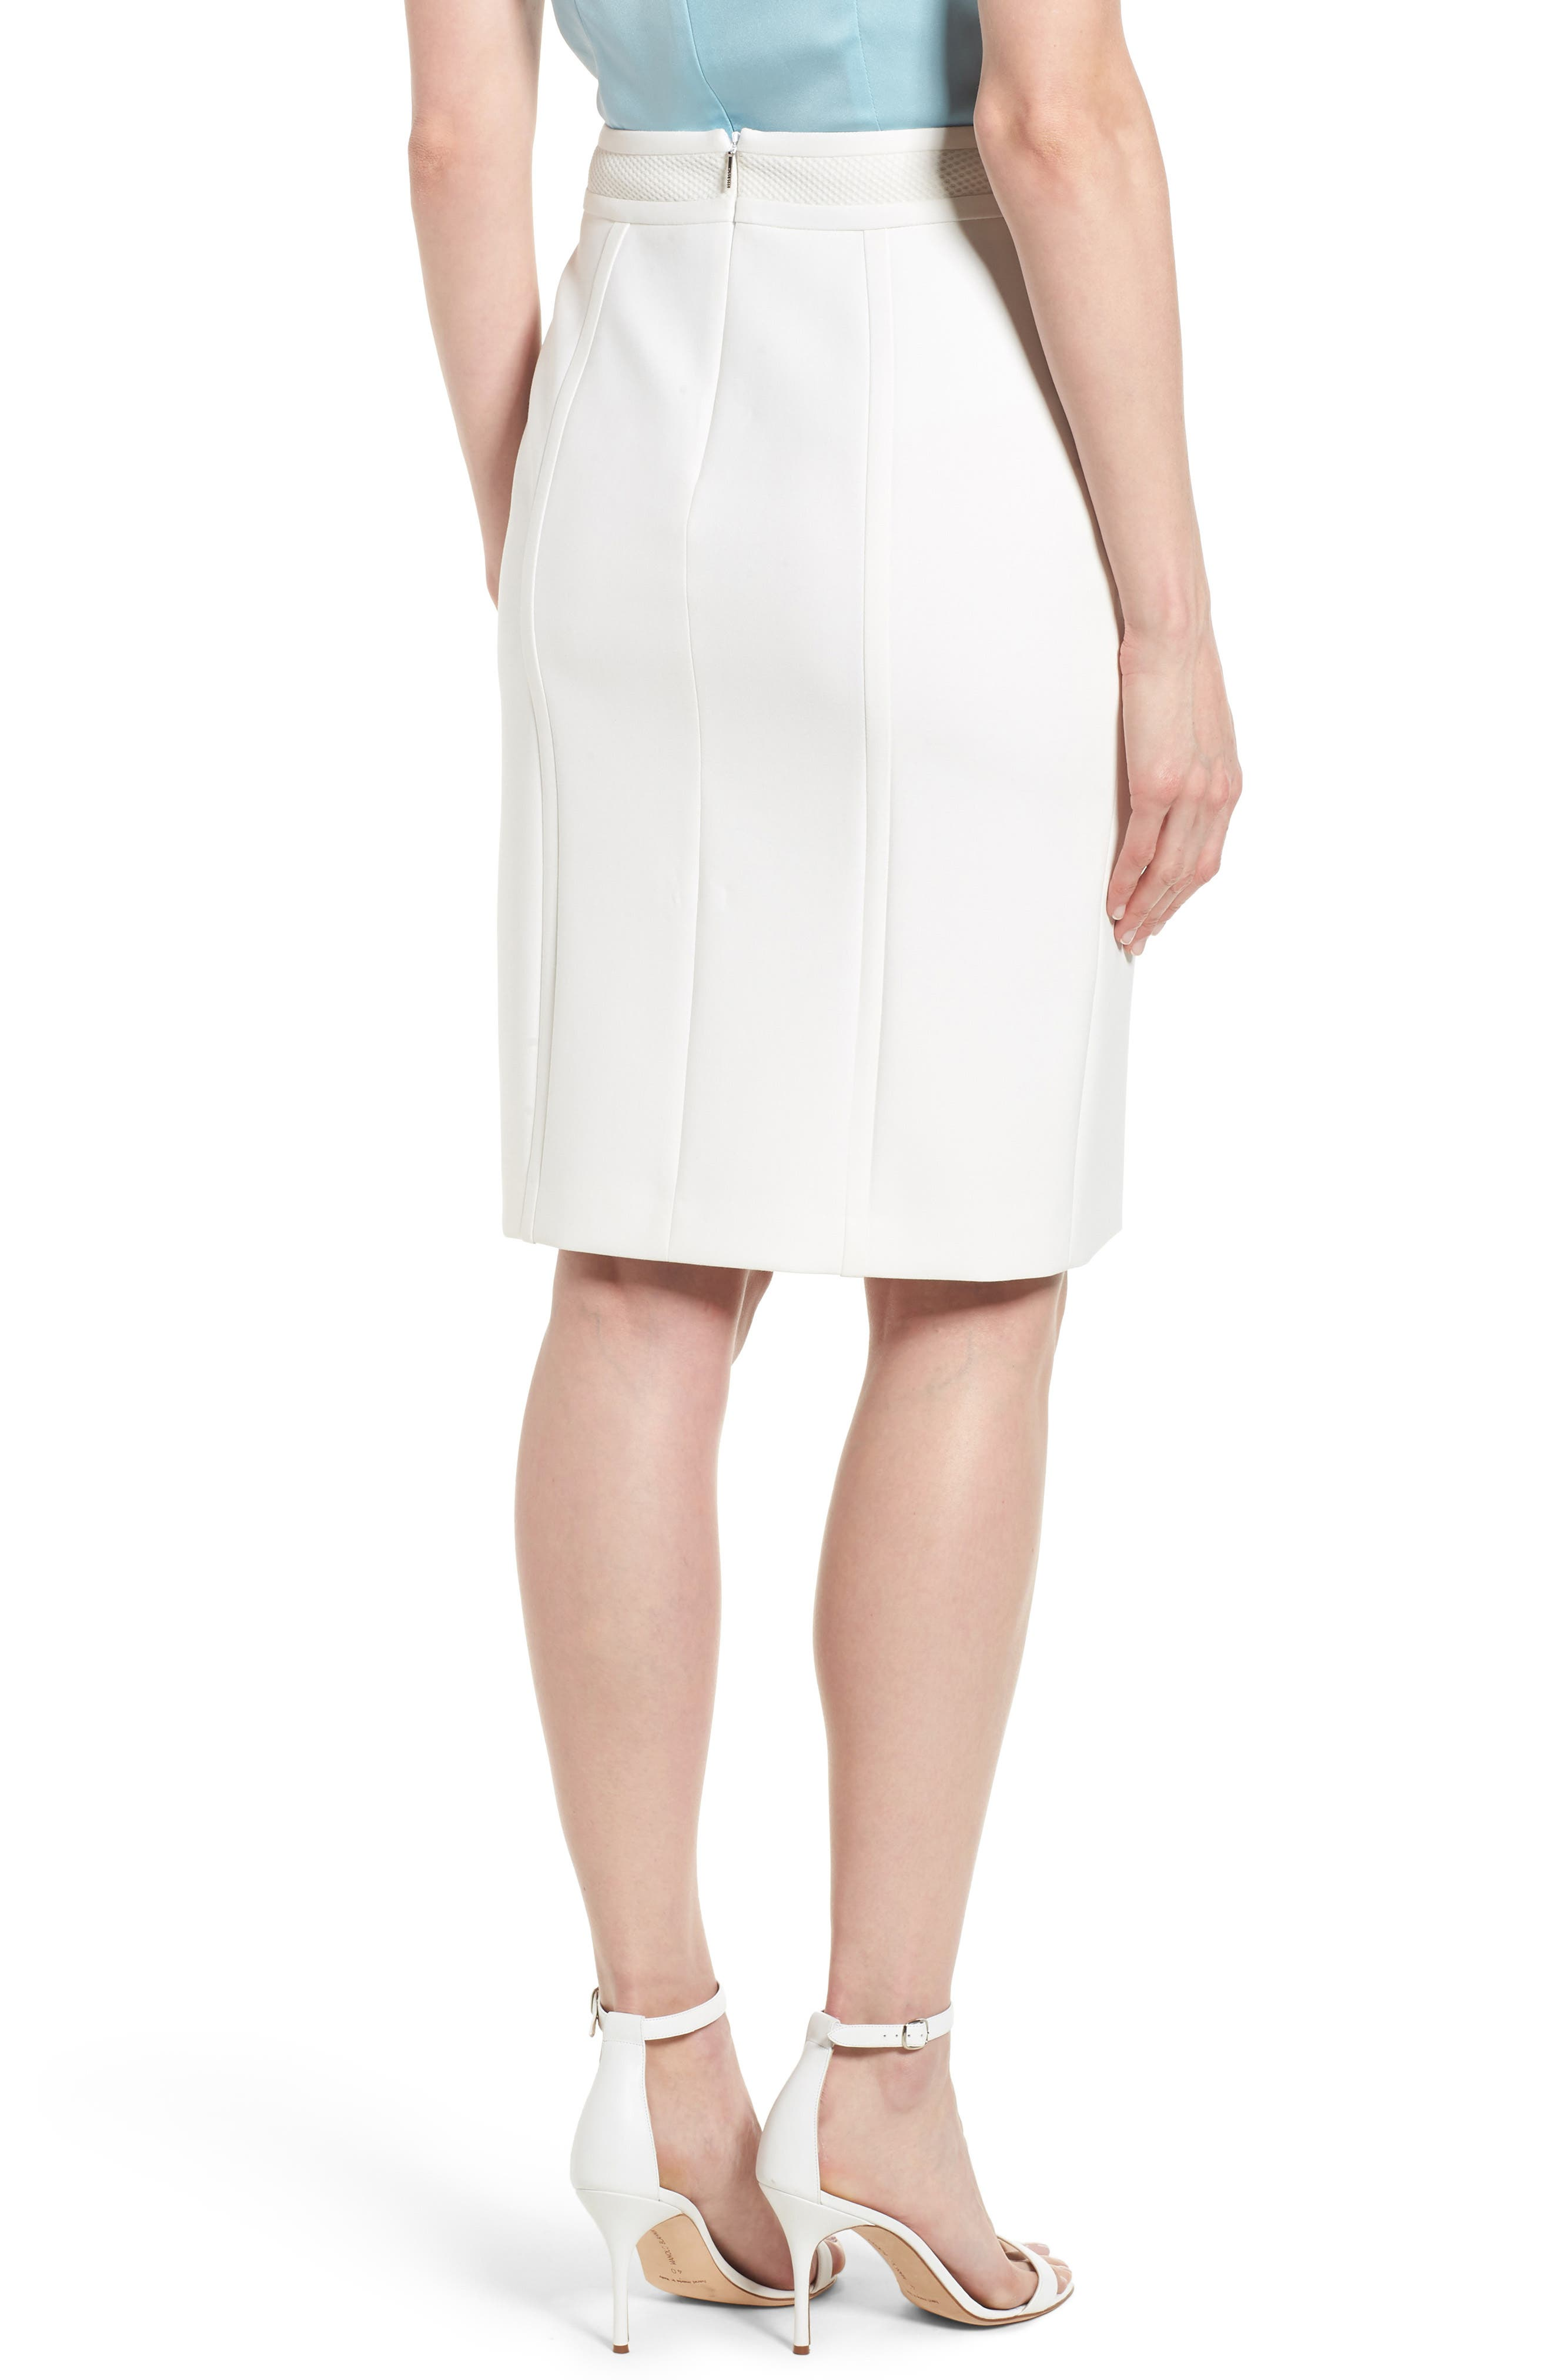 Vadama Ponte Pencil Skirt,                             Alternate thumbnail 2, color,                             112